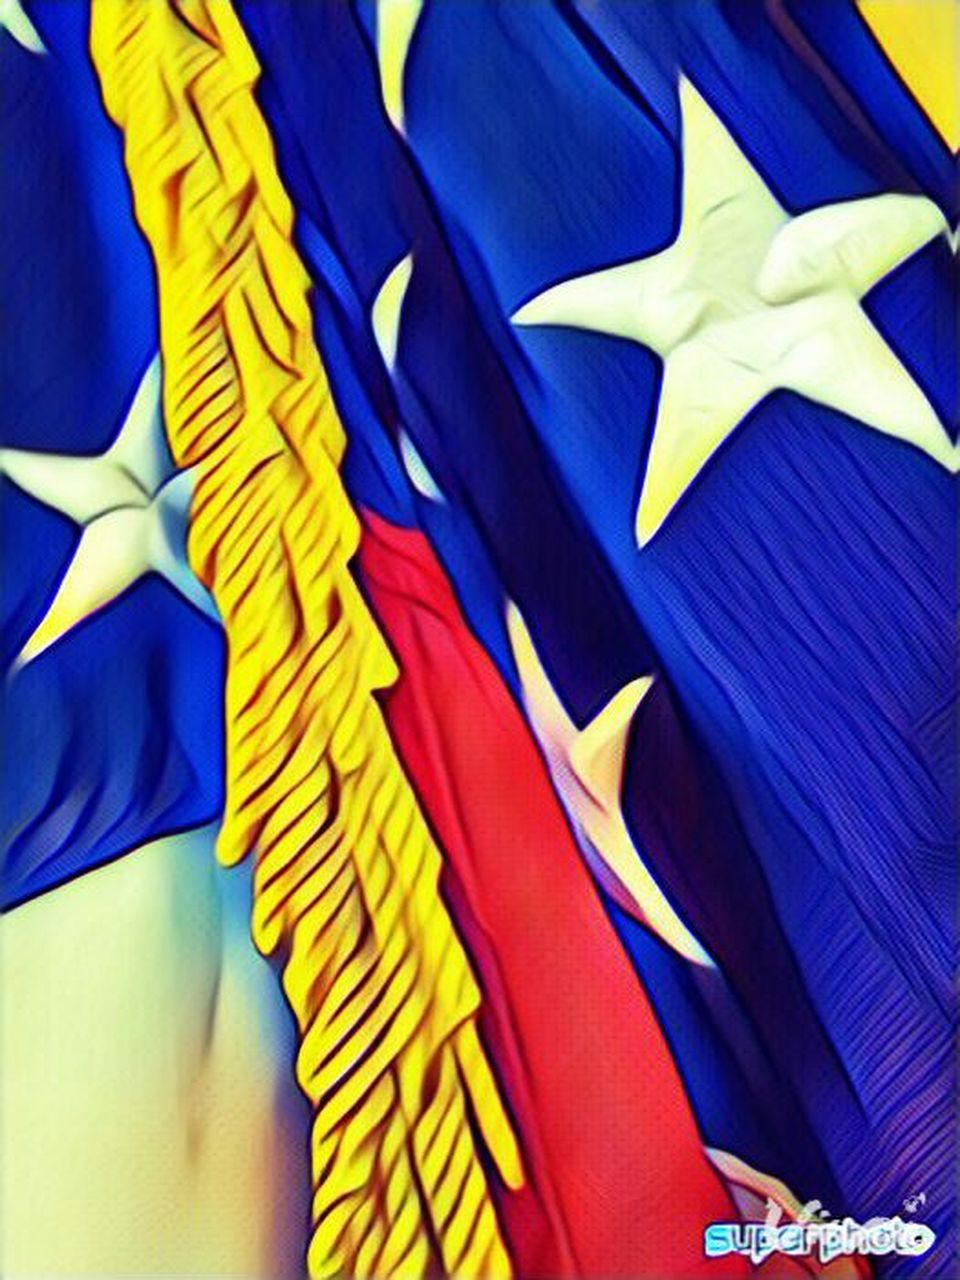 blue, multi colored, textile, flag, human body part, patriotism, full frame, abstract, yellow, pattern, backgrounds, close-up, day, people